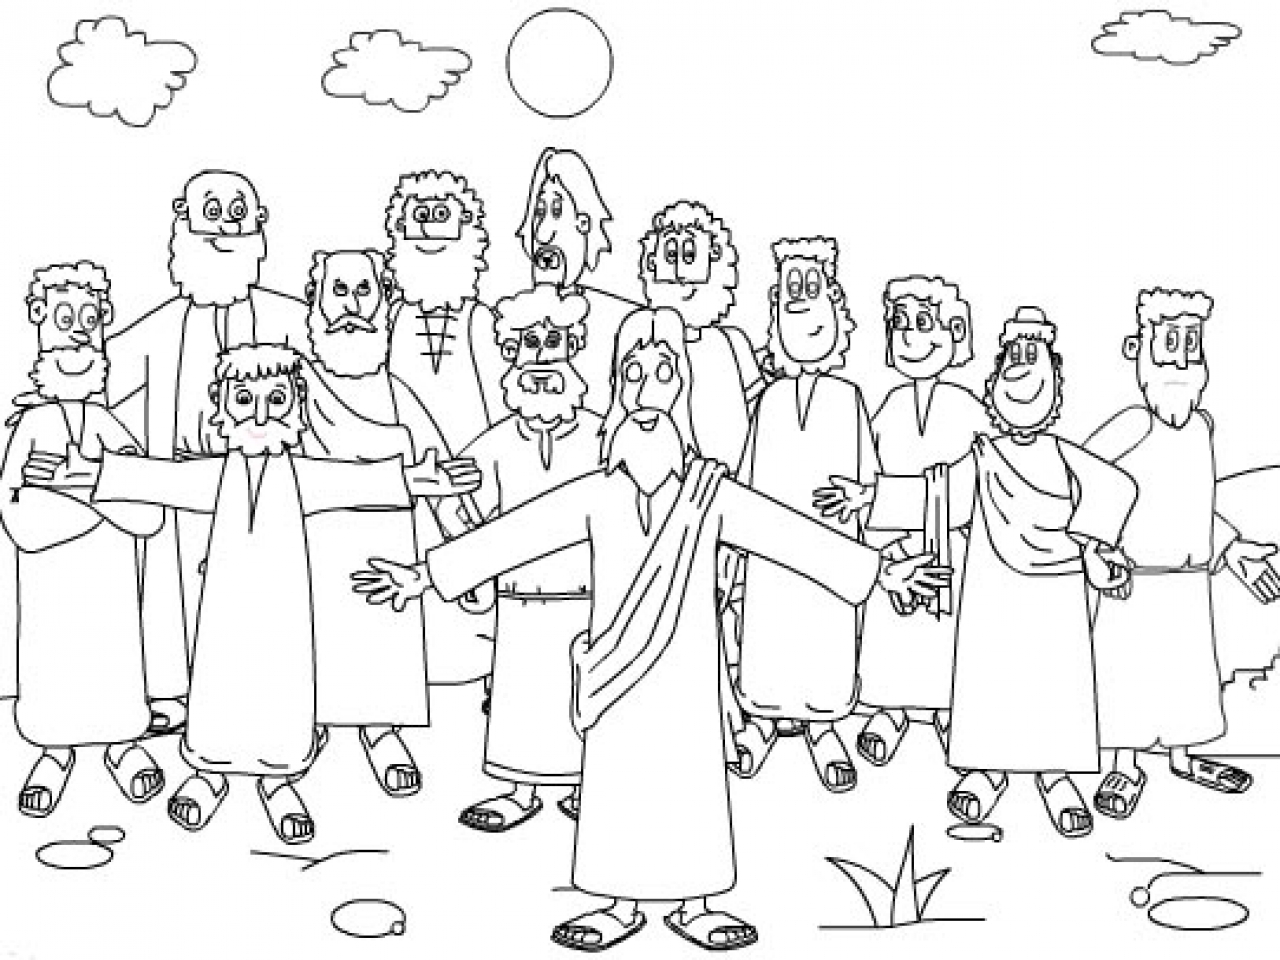 Lds clipart black and white jesus and the twelve disciples jpg royalty free download Twelve Disciples Coloring Page - Coloring Home jpg royalty free download